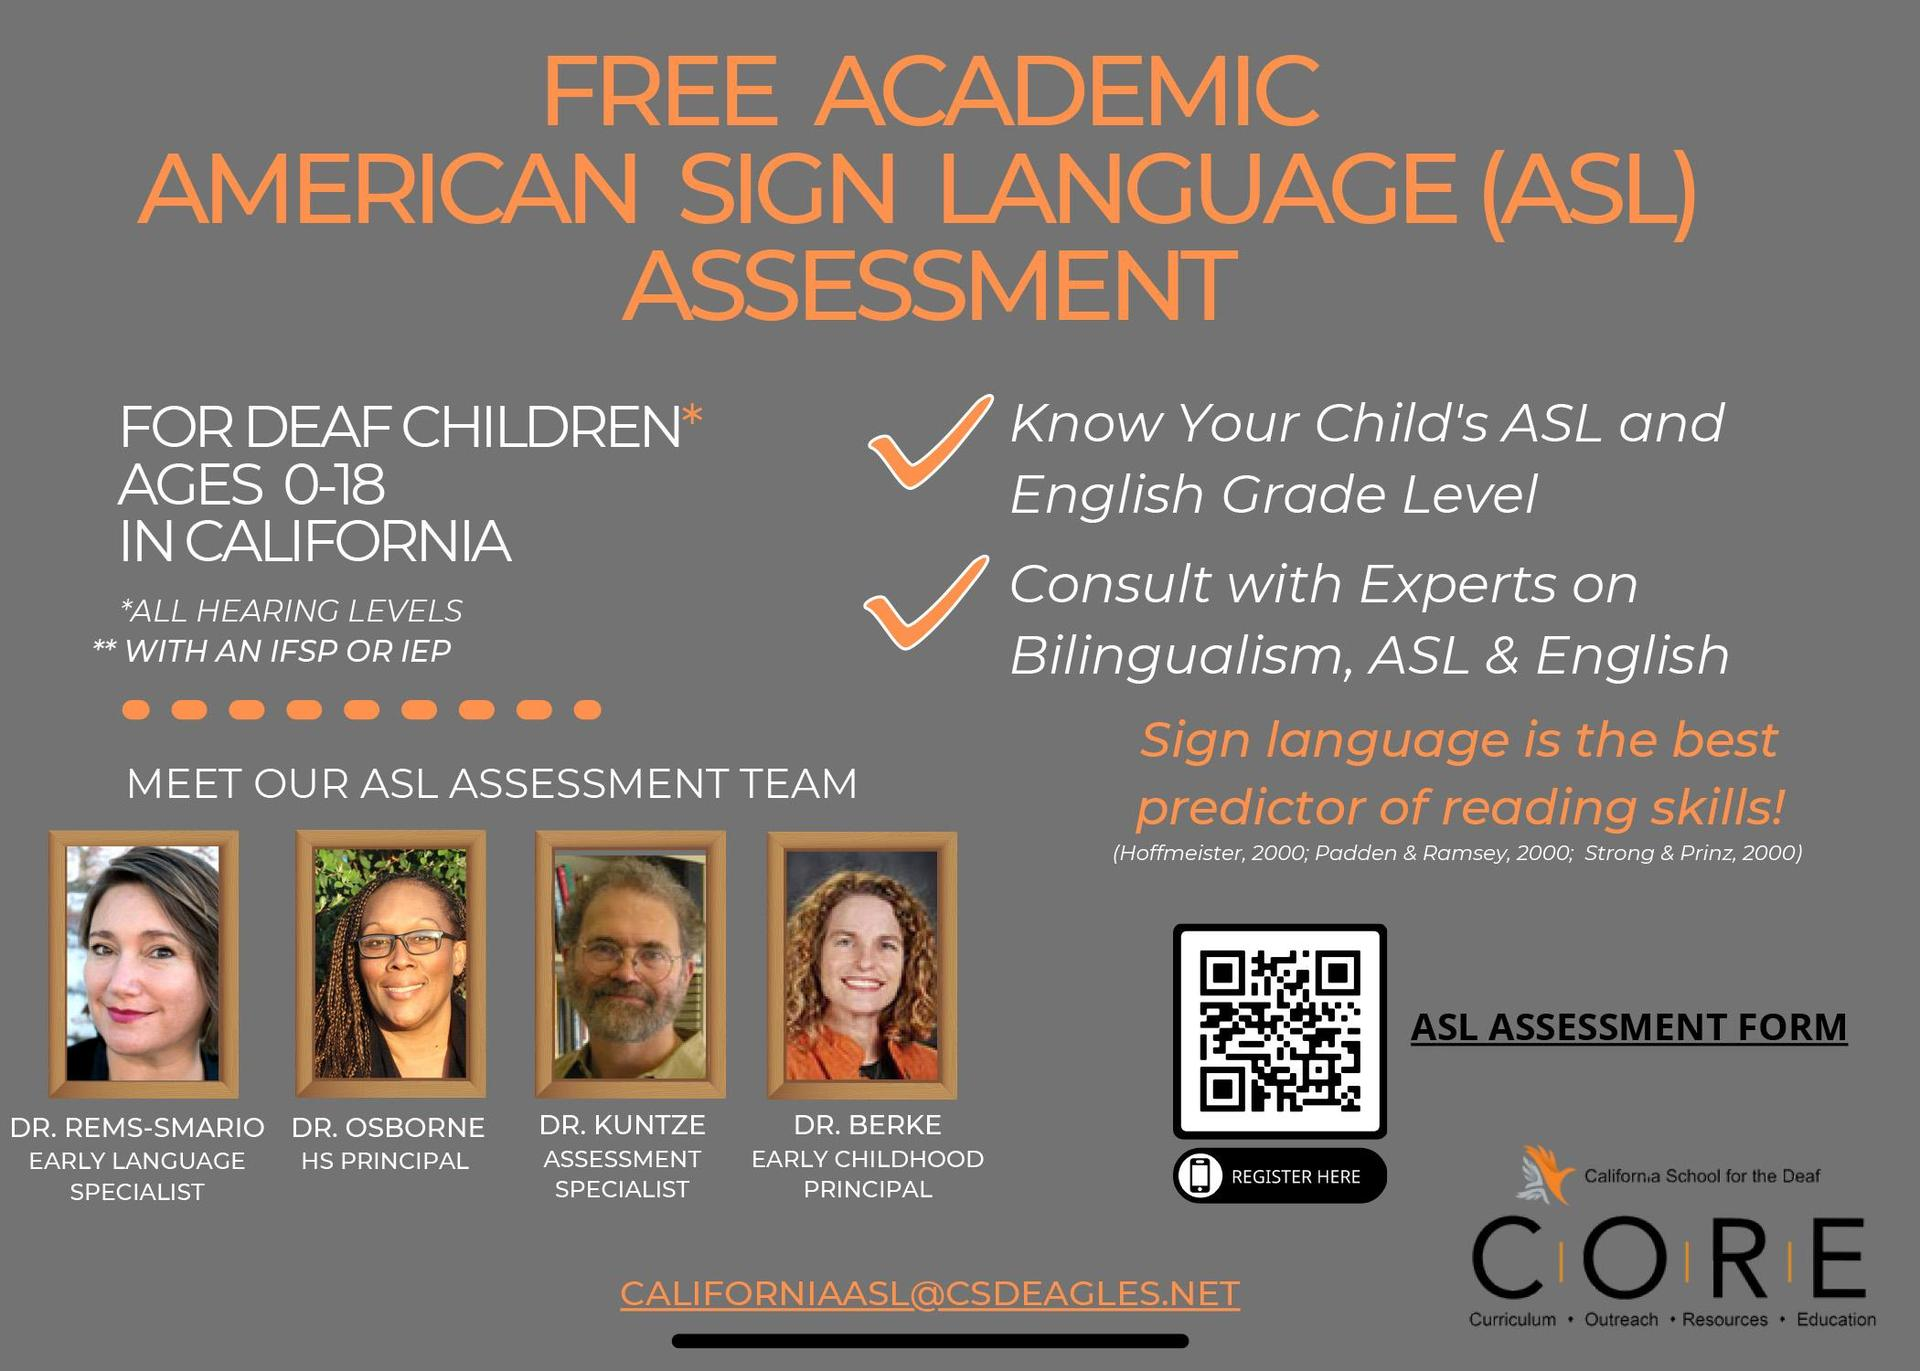 Free ASL Assessment with links to register